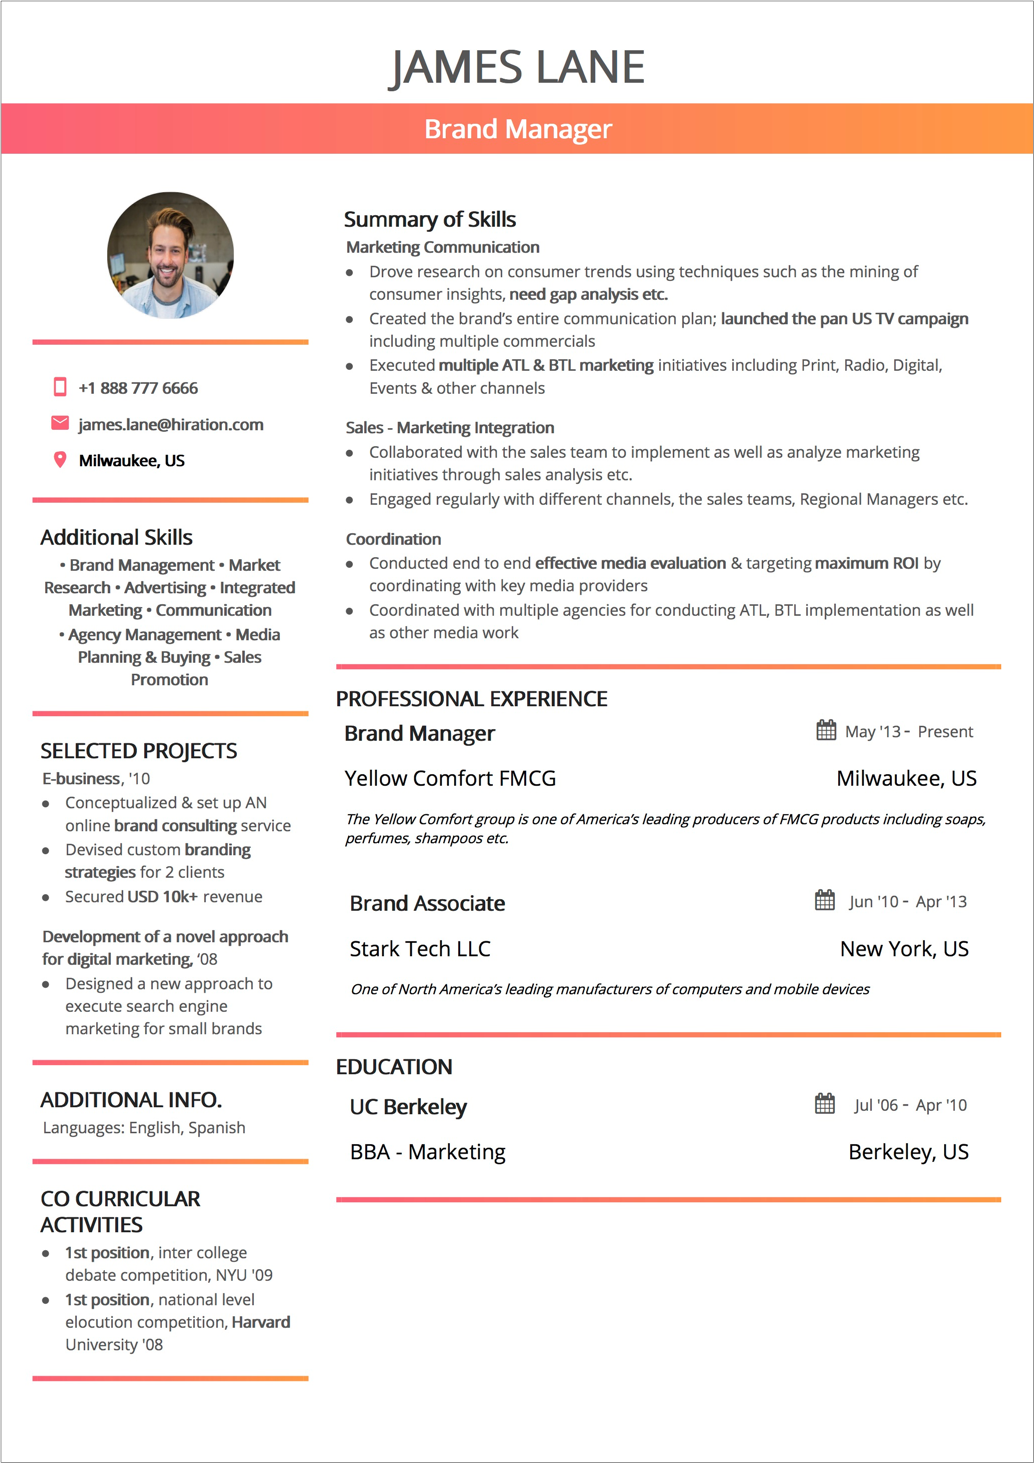 Functional Resume - The 2018 Guide to Functional Resumes